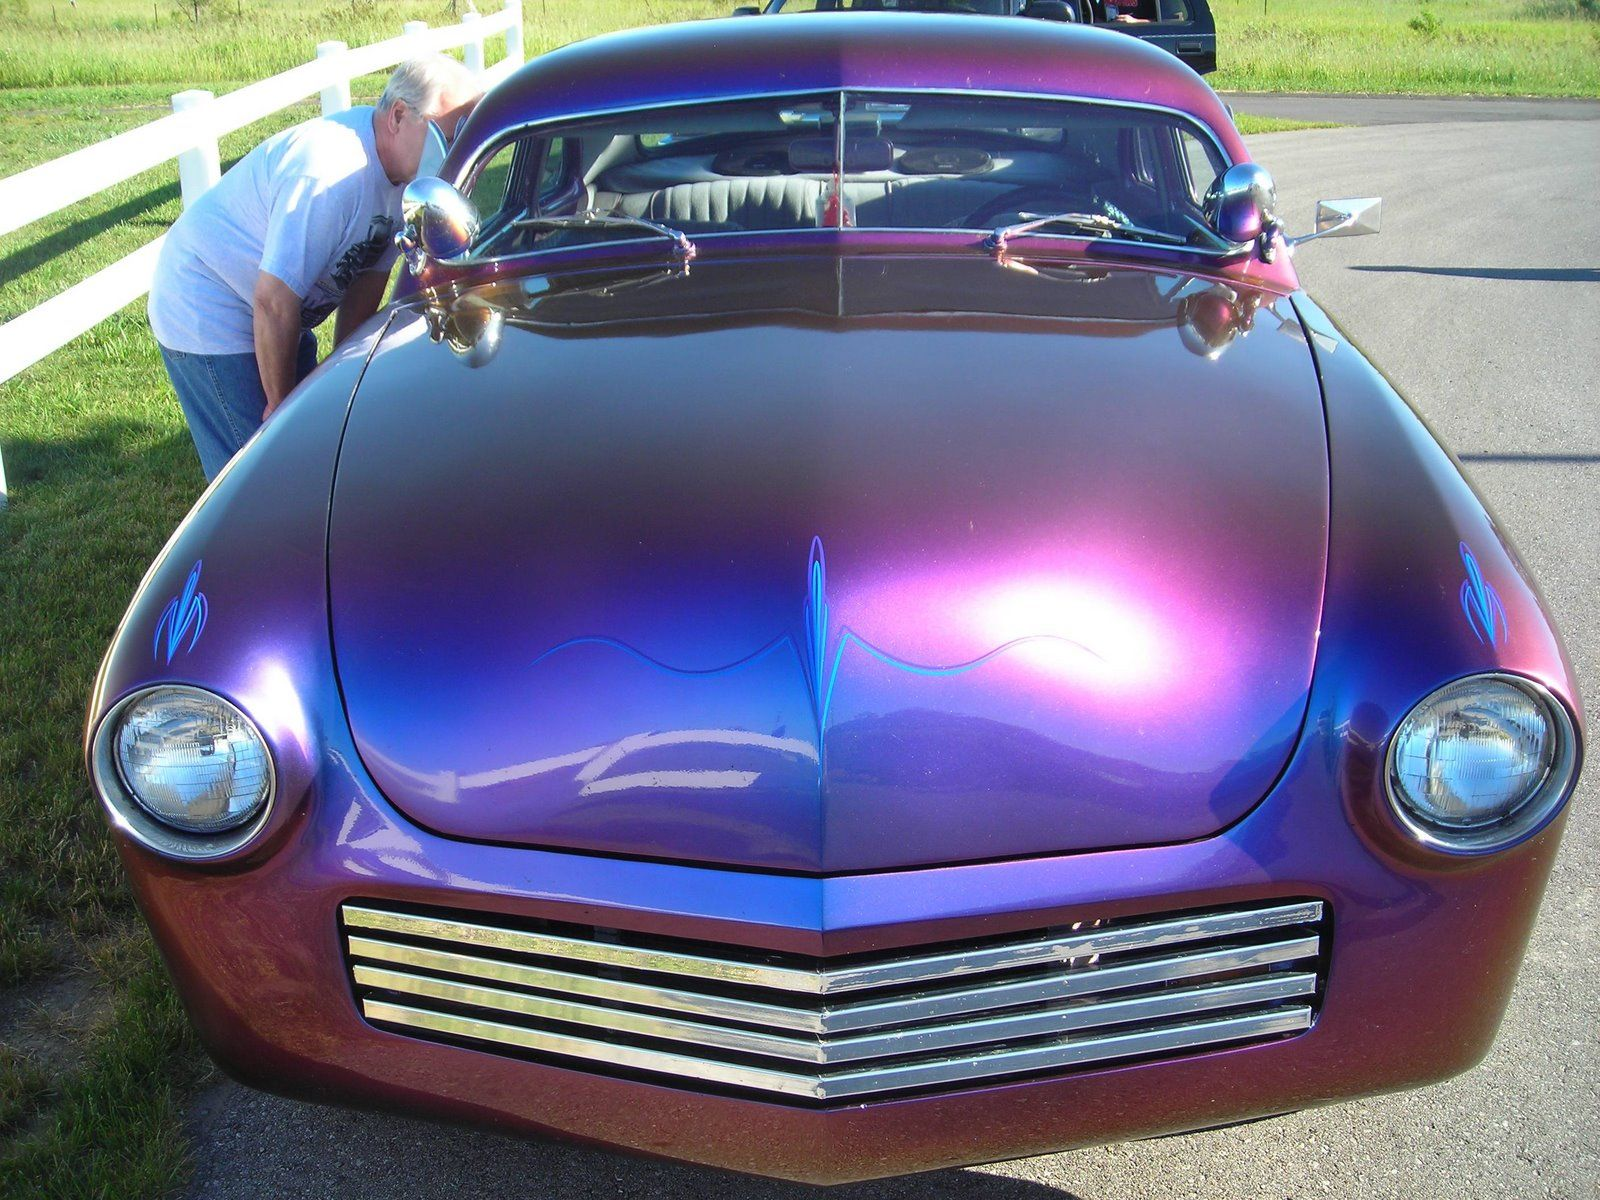 Gorgeous mercury it has the most incredible paint job it s either blue or purple depending on the angle